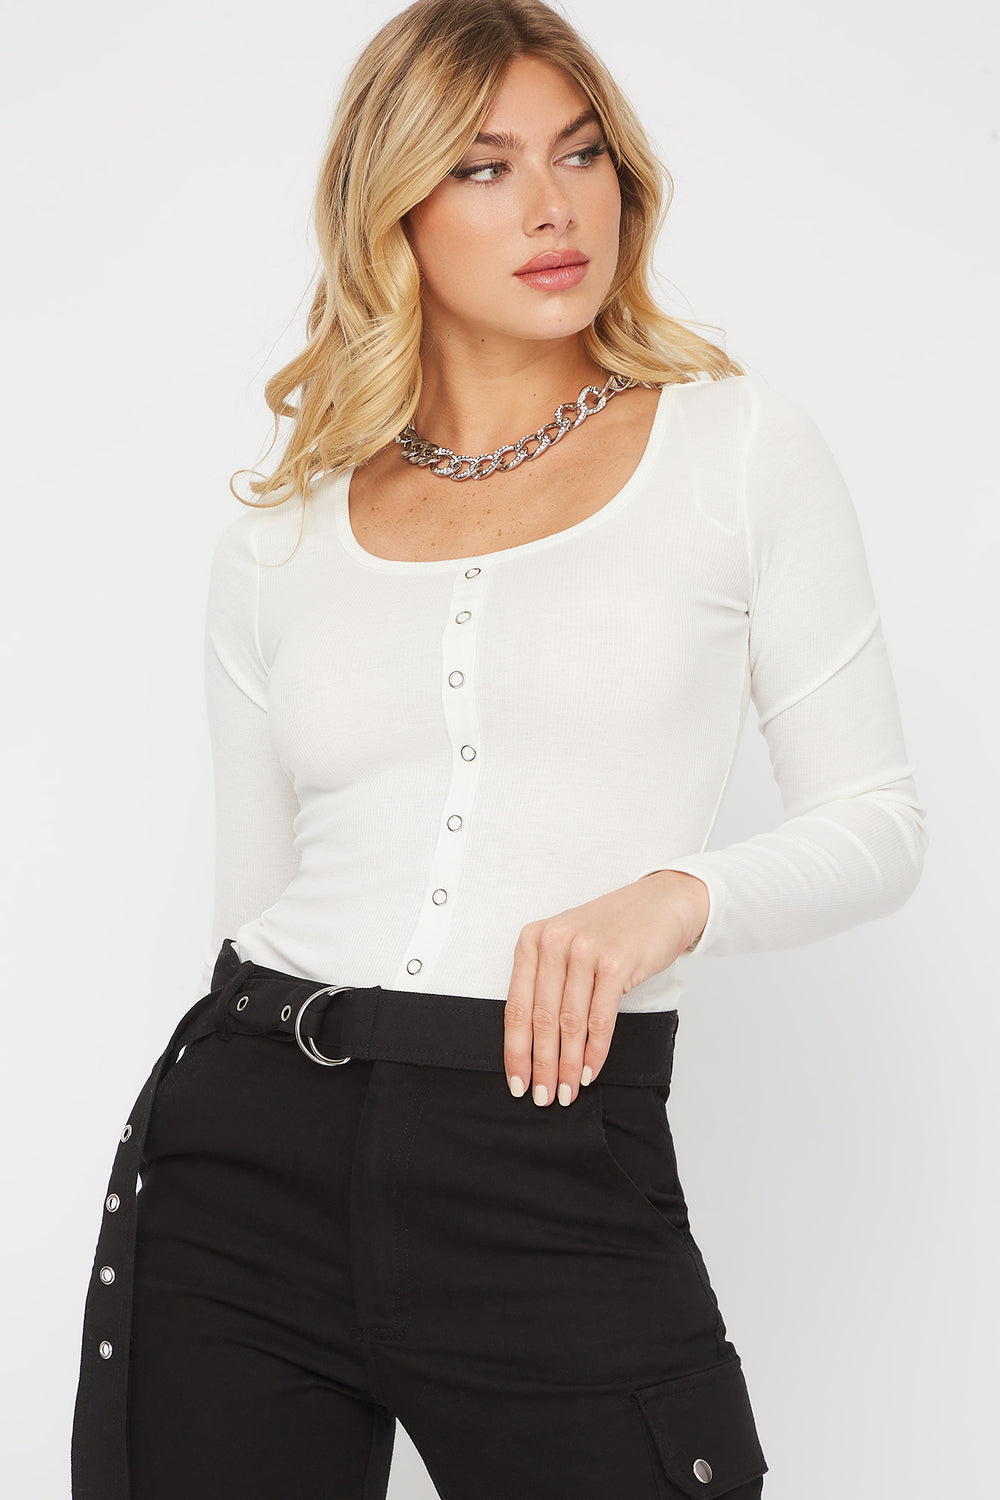 Ribbed Square Neck Snap Button Long Sleeve Cream